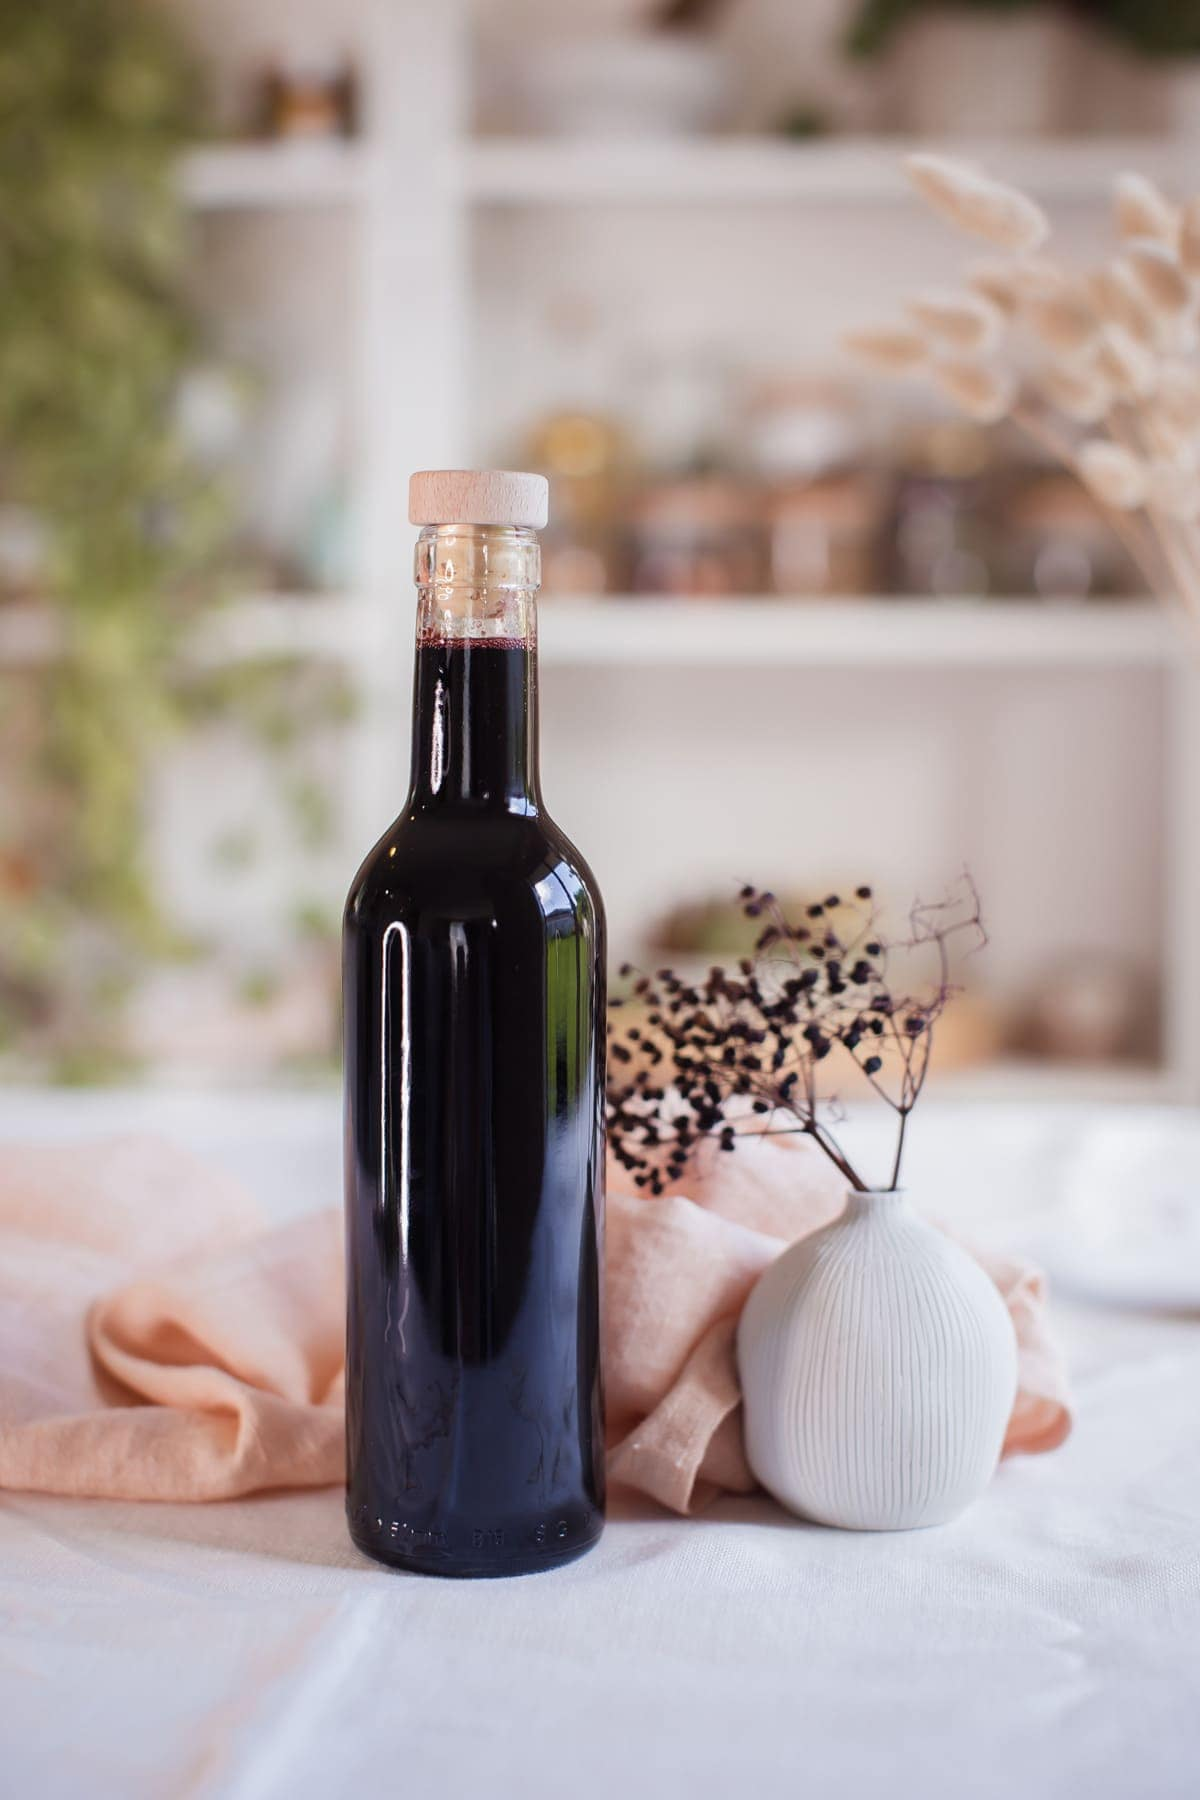 A 500ml glass bottle filled with deep purple elderberry syrup, on the kitchen table with a bookcase filled with dried herbs in glass jars in the background.